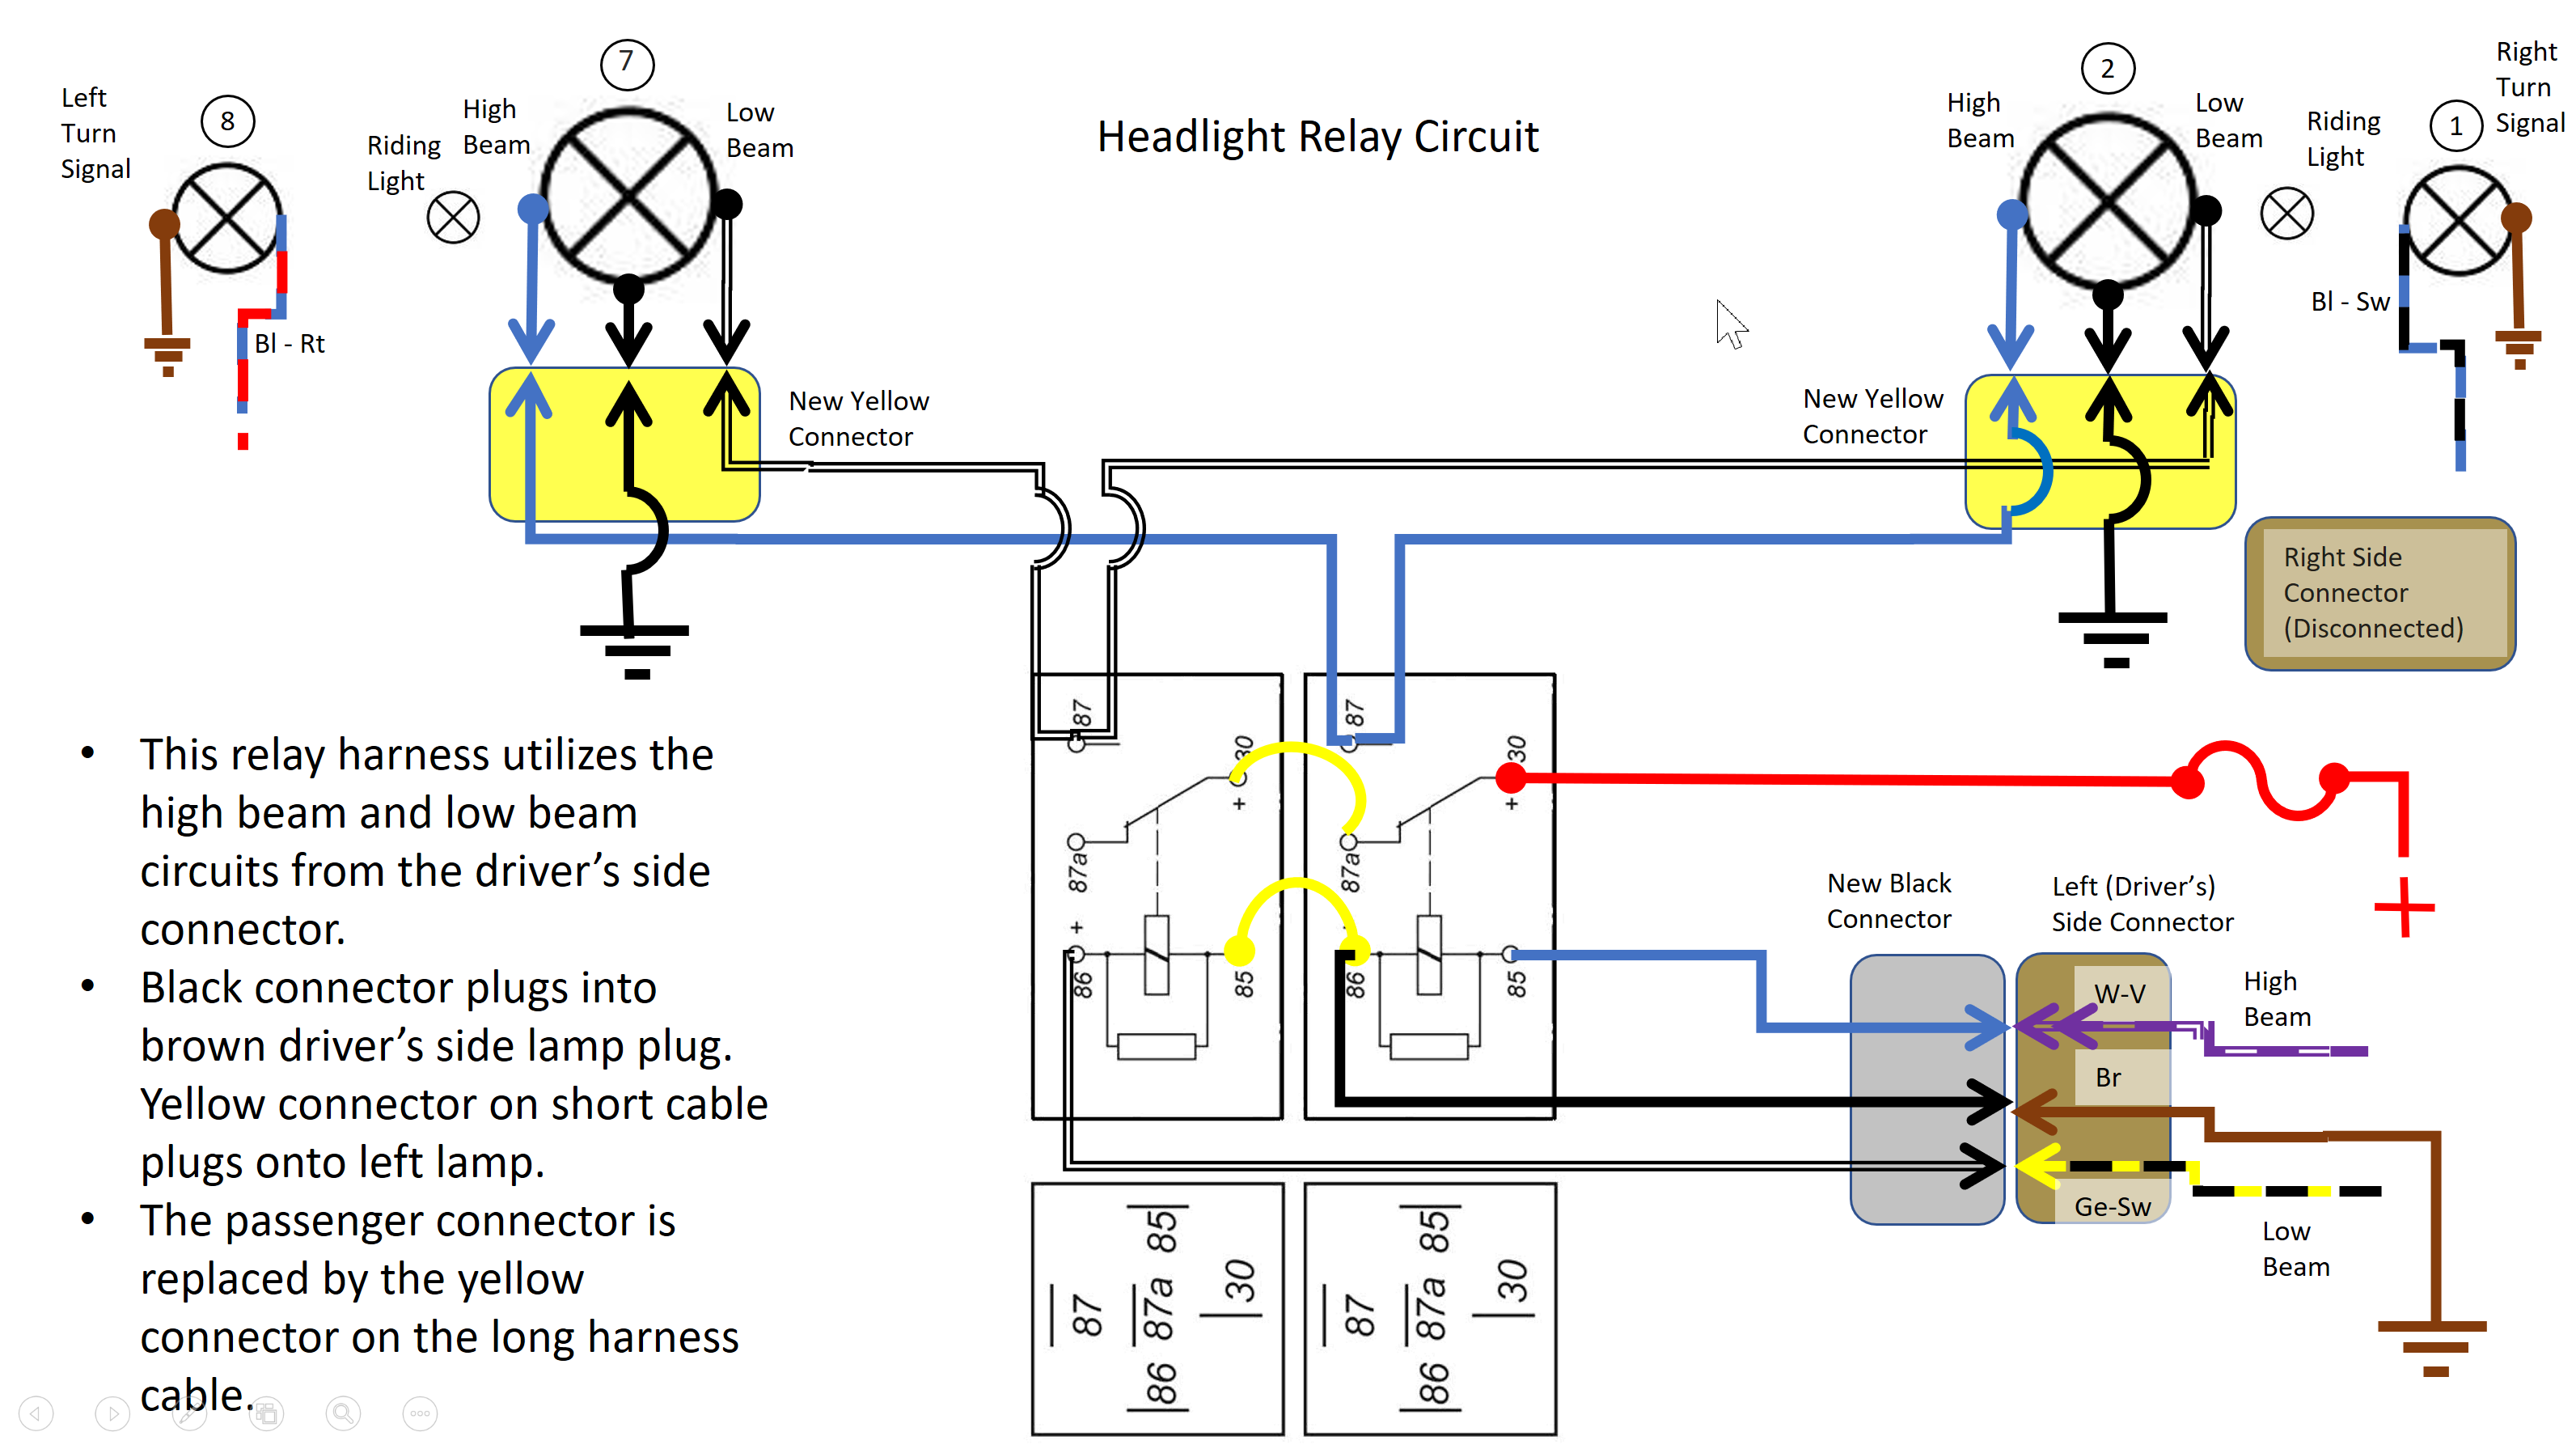 Headlight Relay Circuit Diagram Trusted Schematics H4 Wiring Relays How Many Hot Wires Bmw 2002 General Brake 2124753652 Headlightrelaycircuitdiagram Thumb